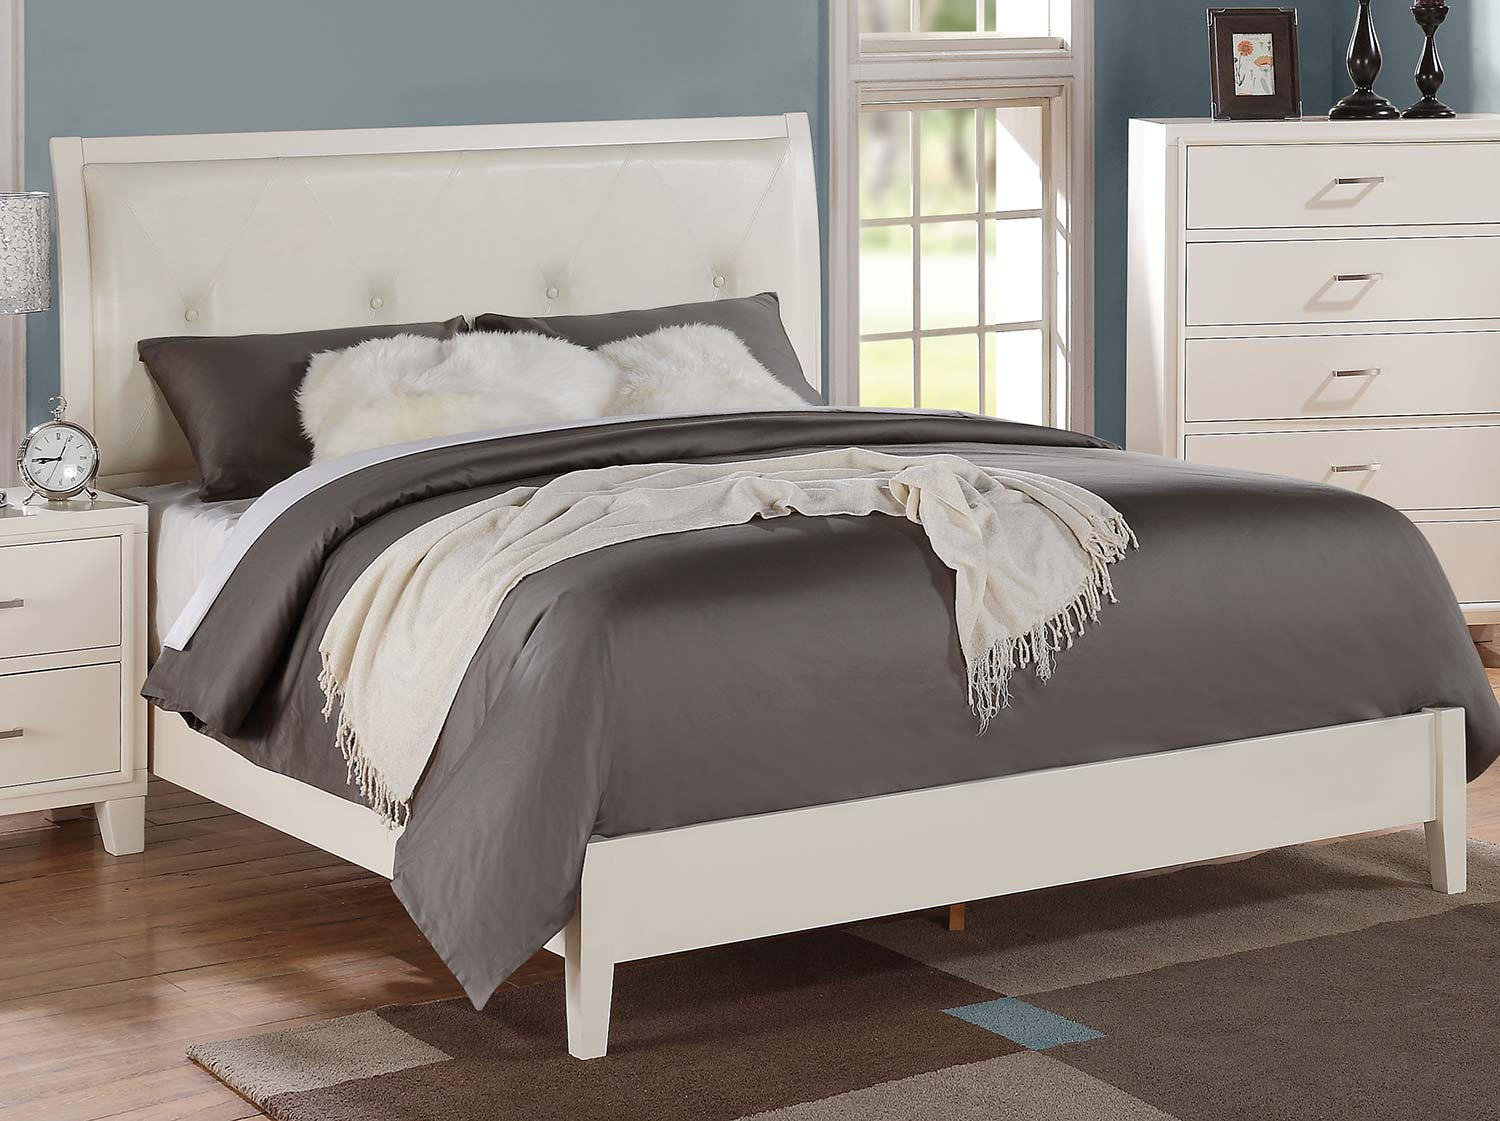 Acme Tyler Bed (Padded HB) - Cream Vinyl/White